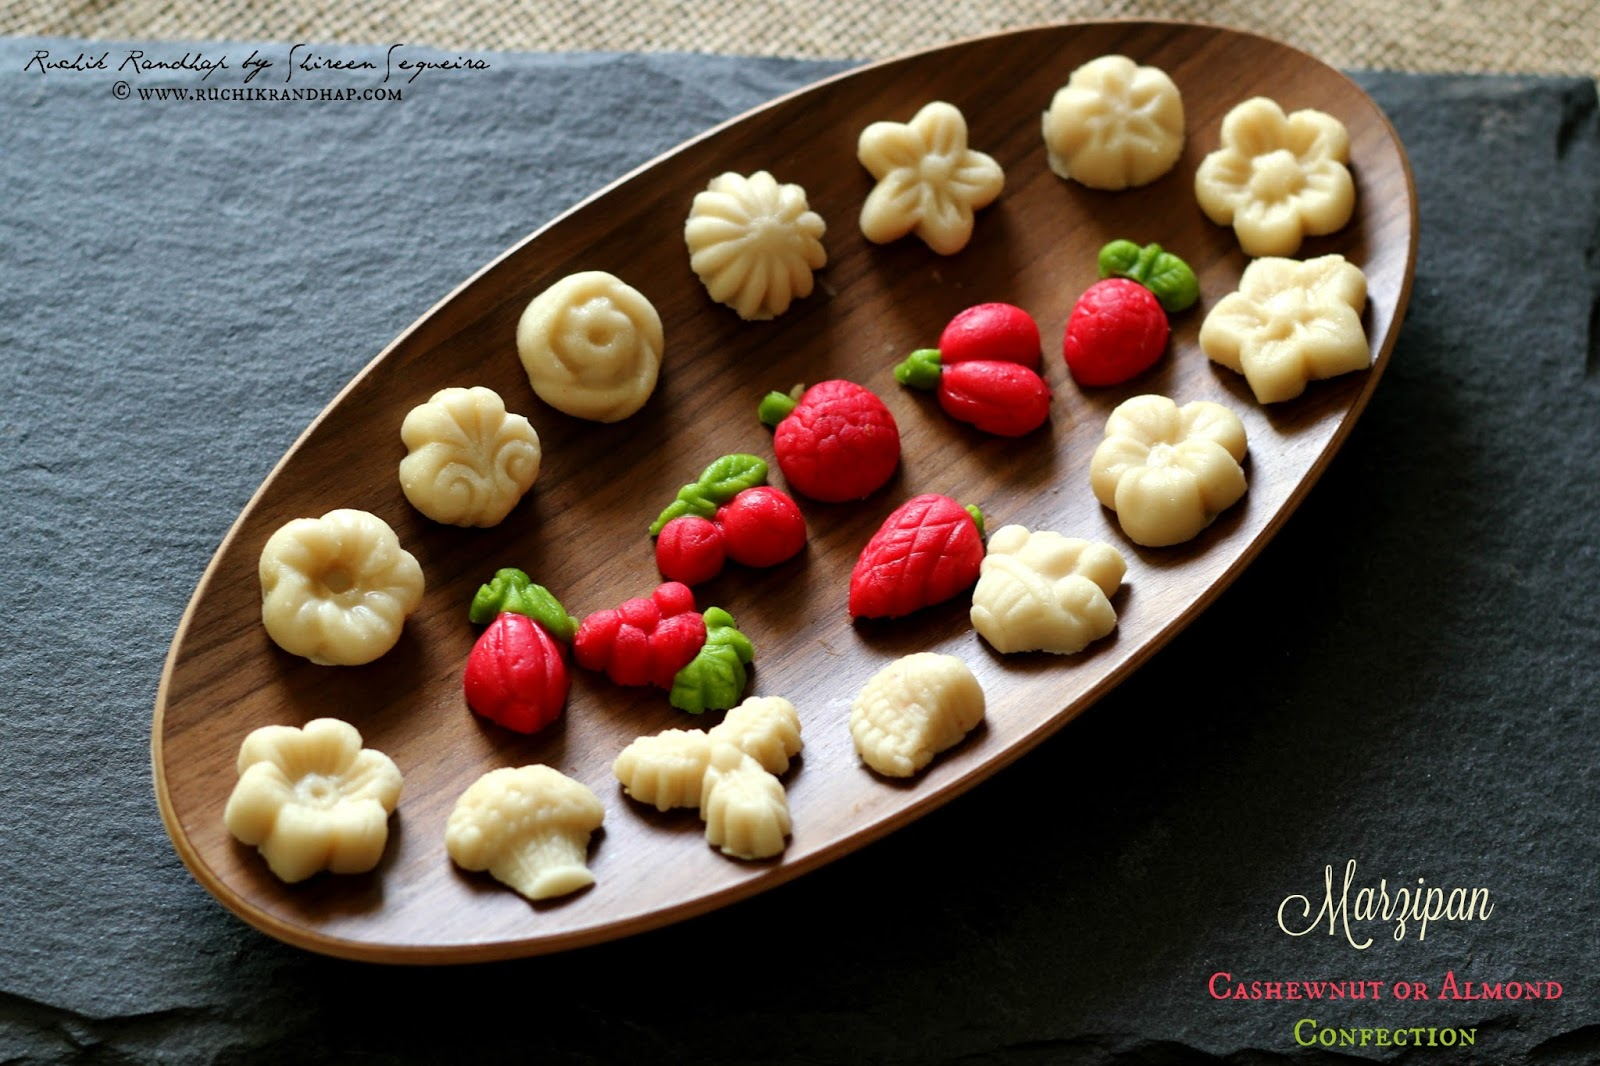 Marzipan - what is it and how can it be cooked at home